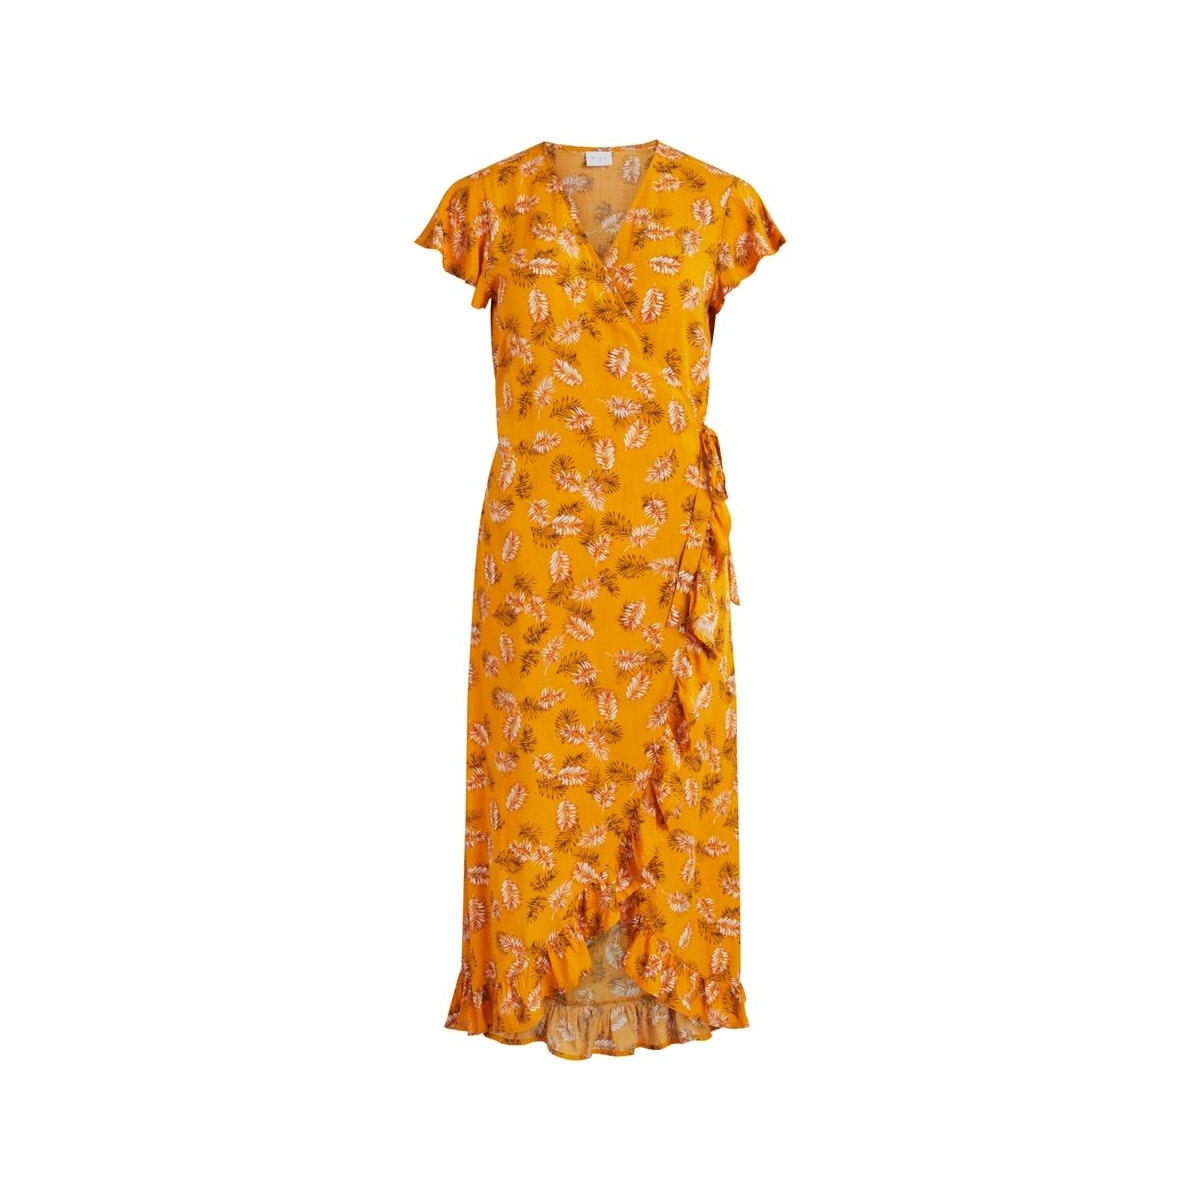 vimaskblini s/s midi wrap dress/l 14059043 vila jurk mineral yellow